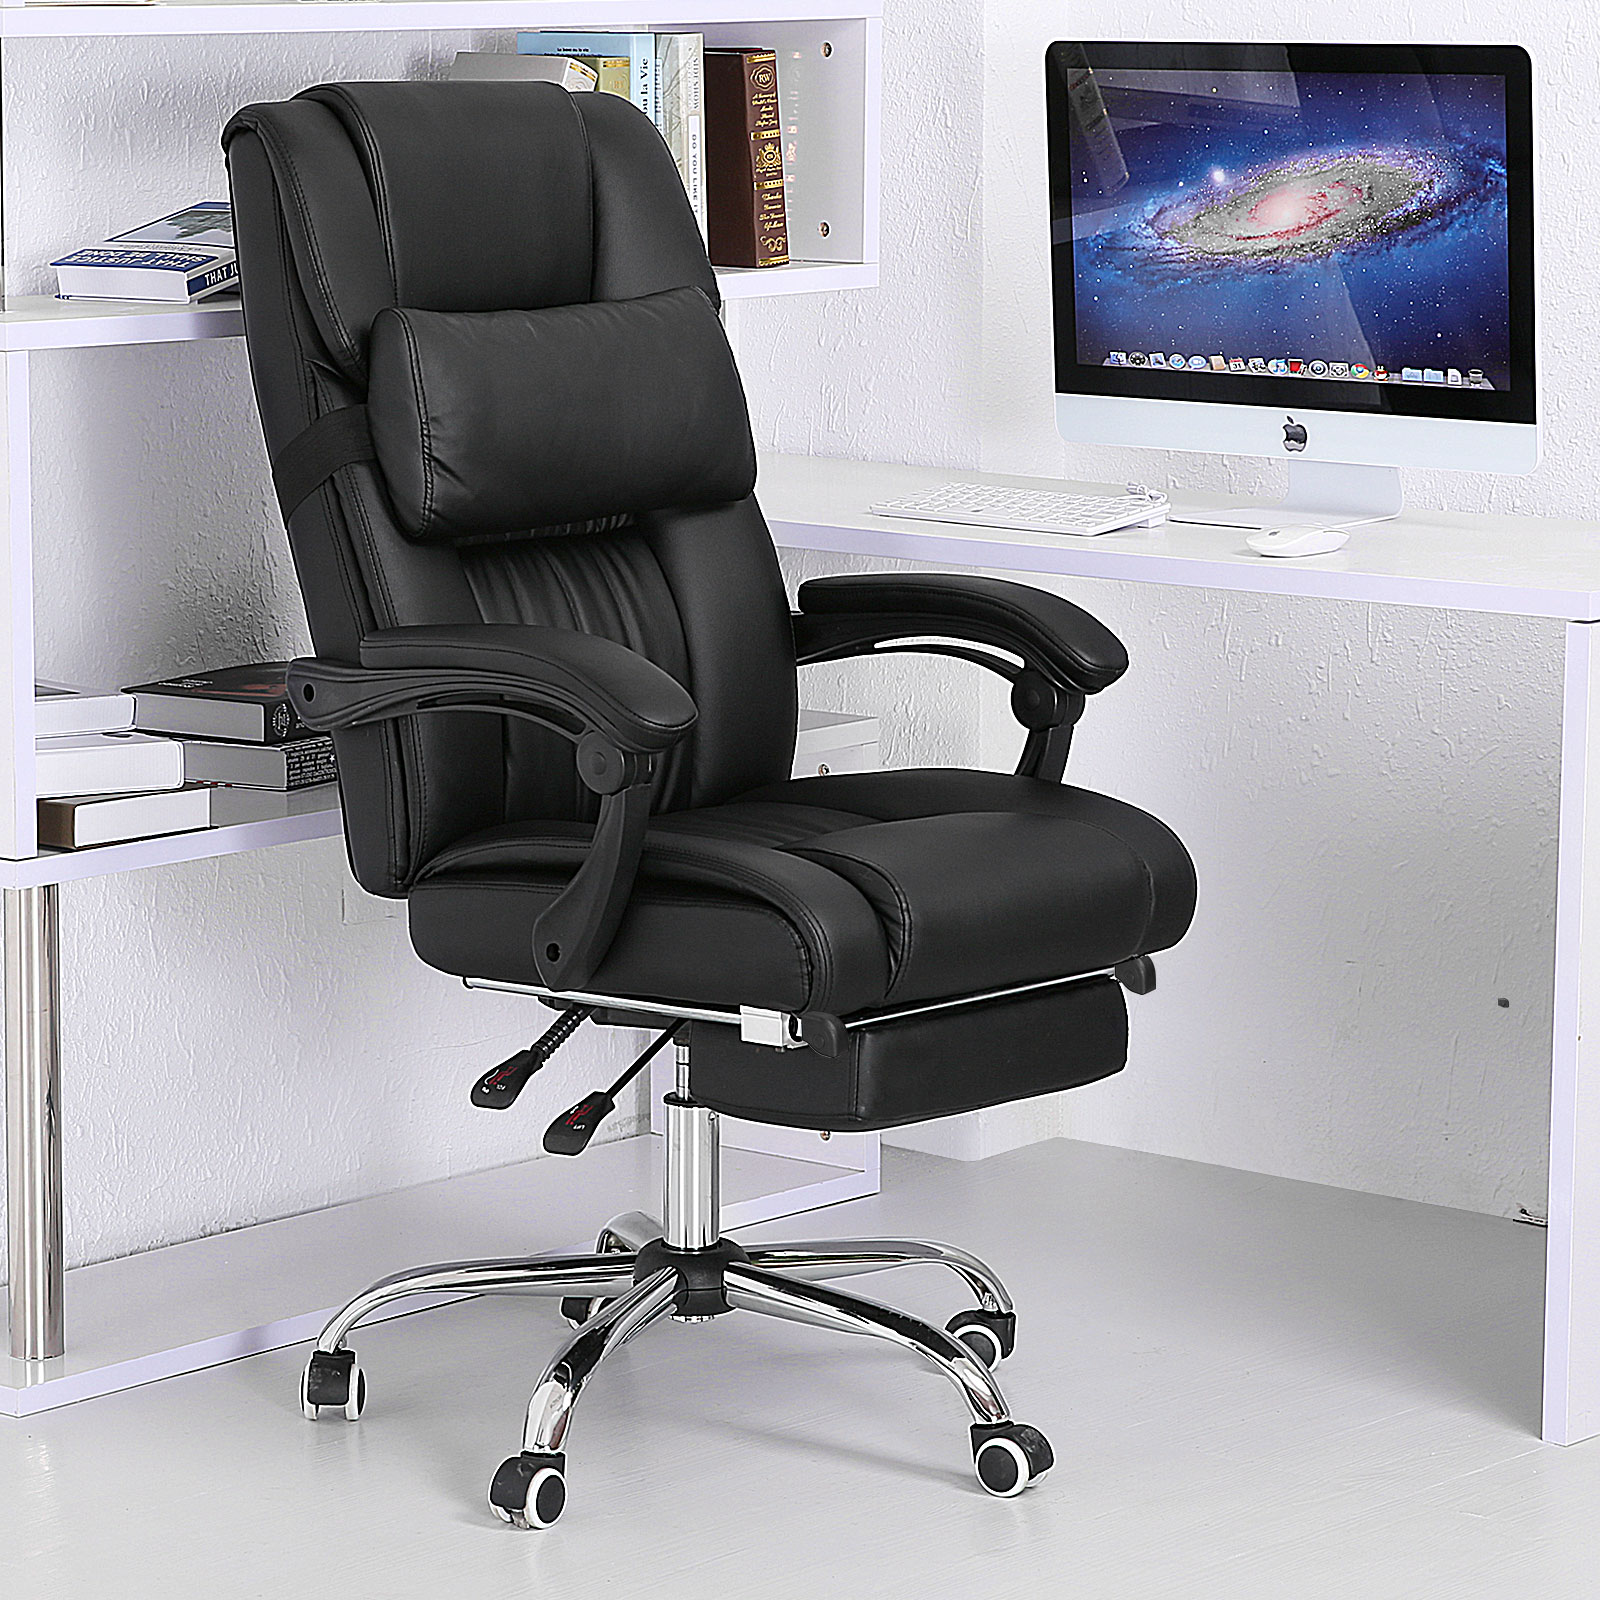 high quality office chairs ergonomic rustic leather chair executive back reclining